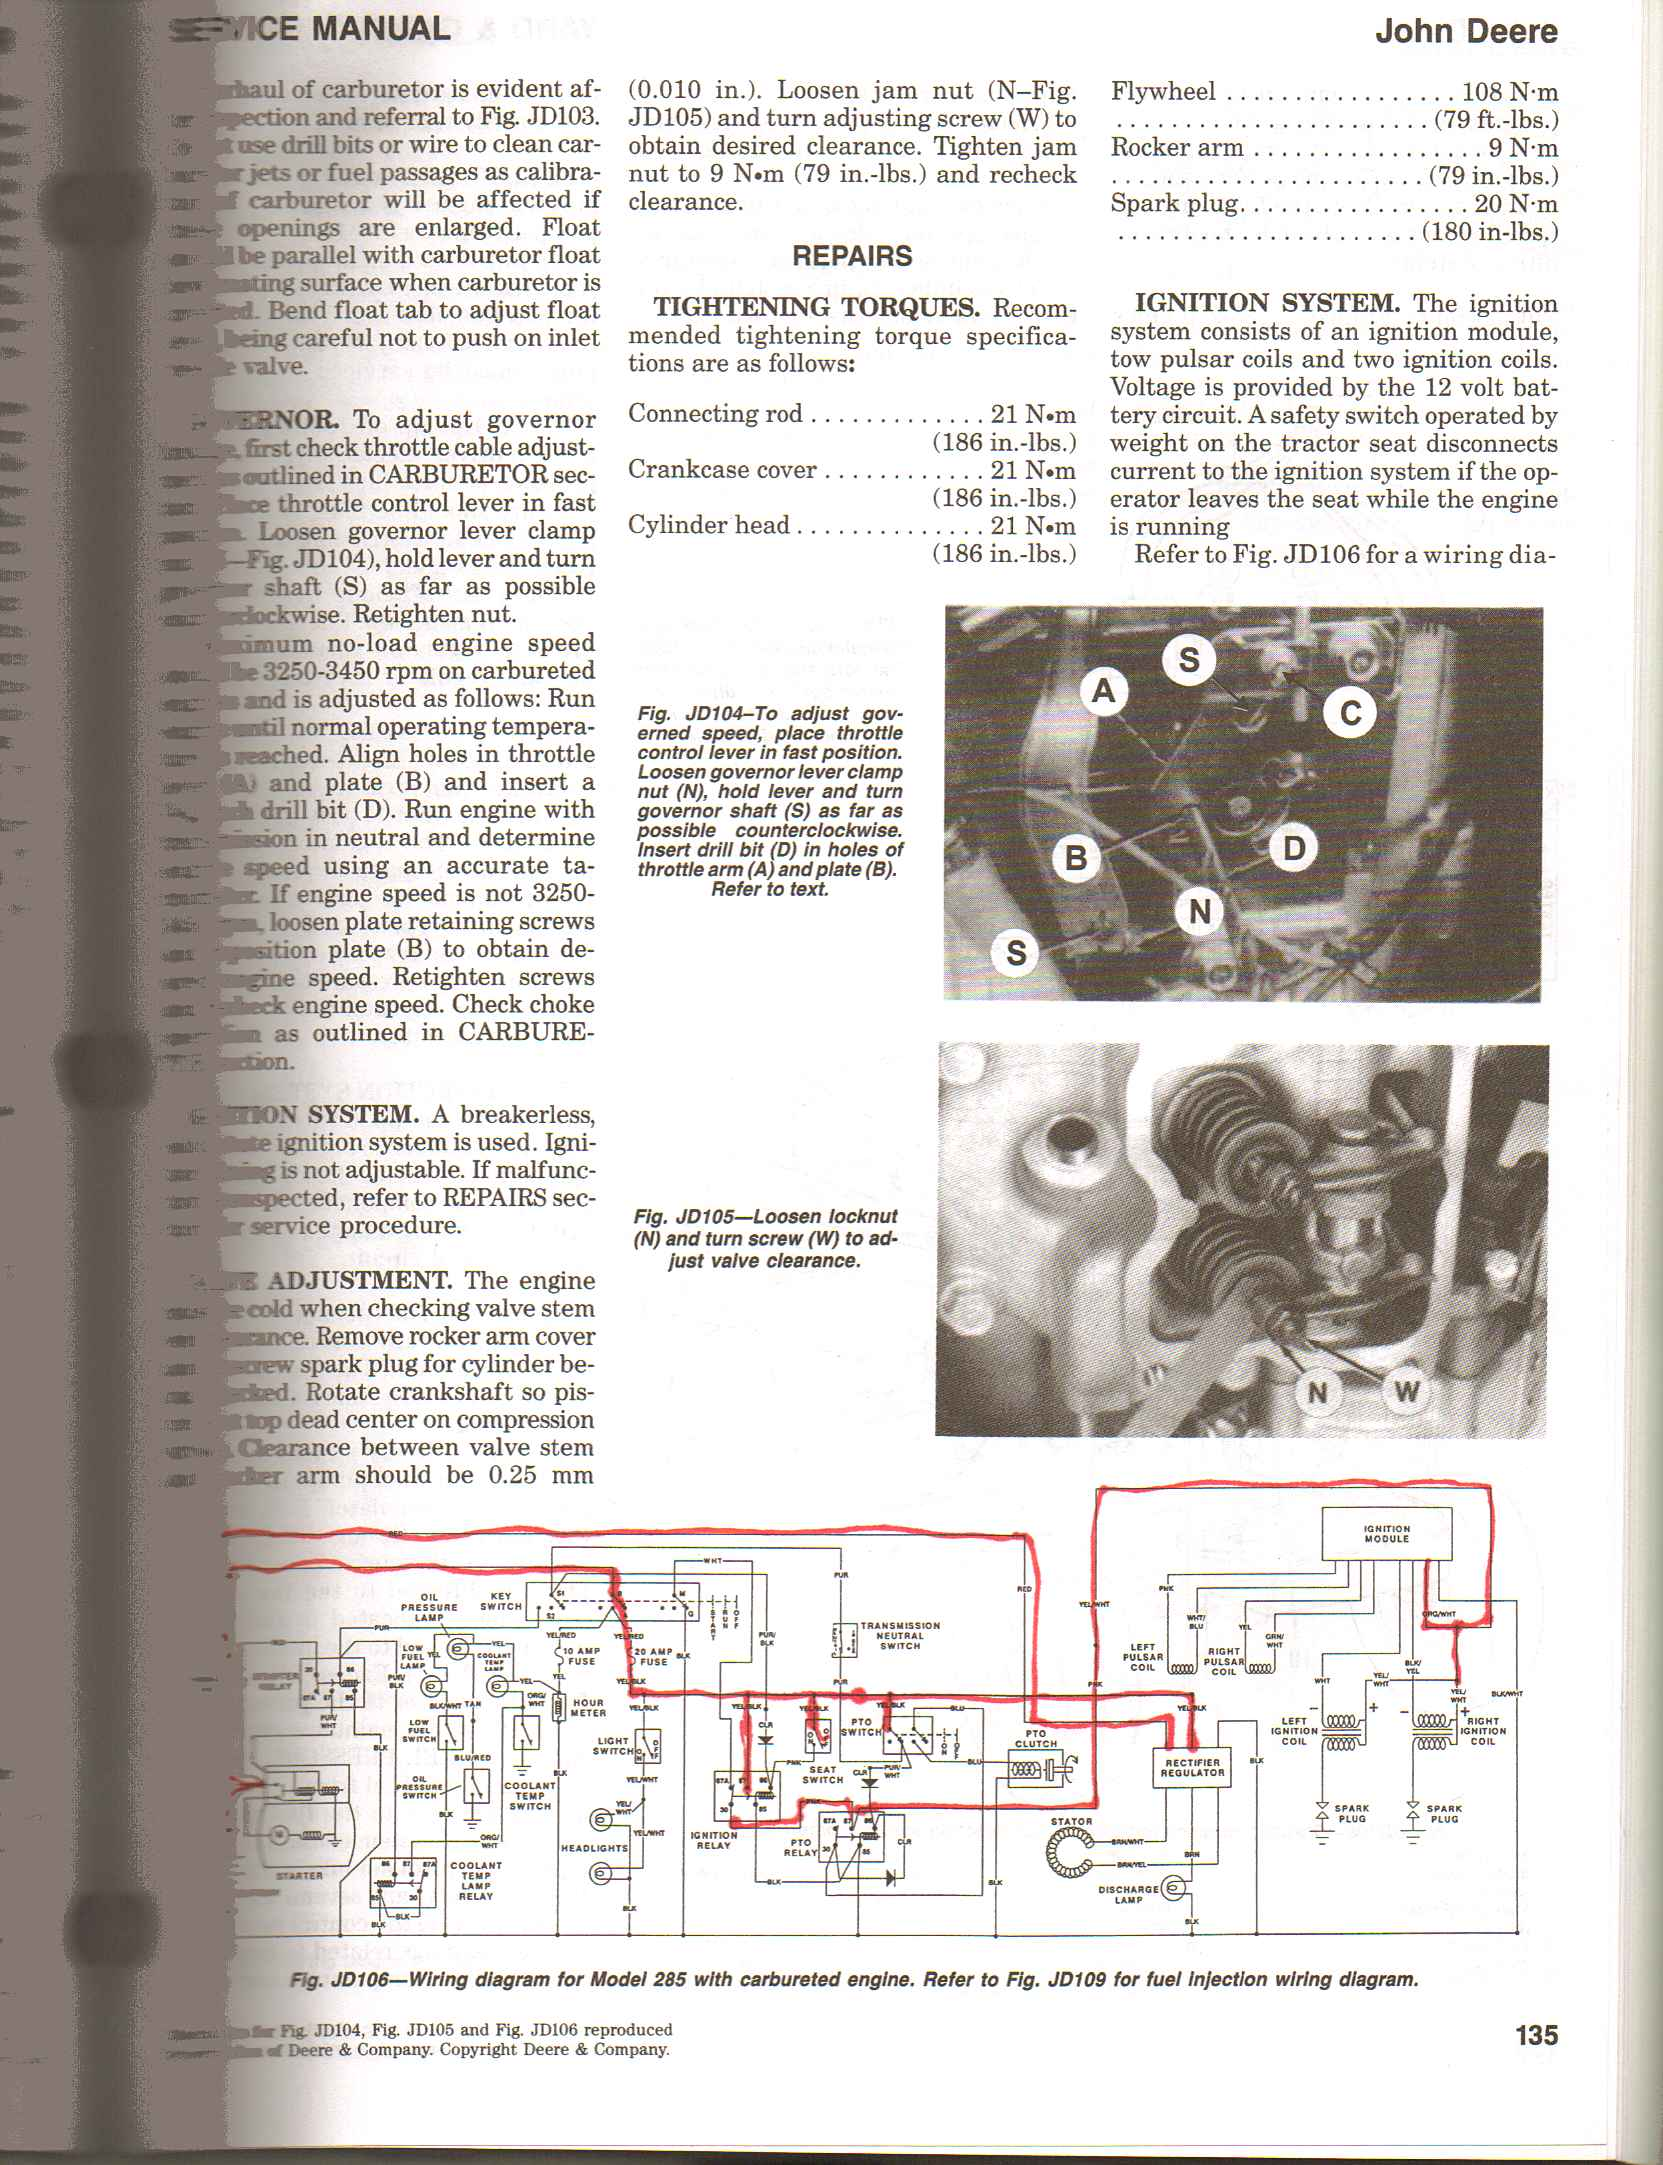 Lawntractorwiringdiagram Wiring Diagram For 300 Series Tractors